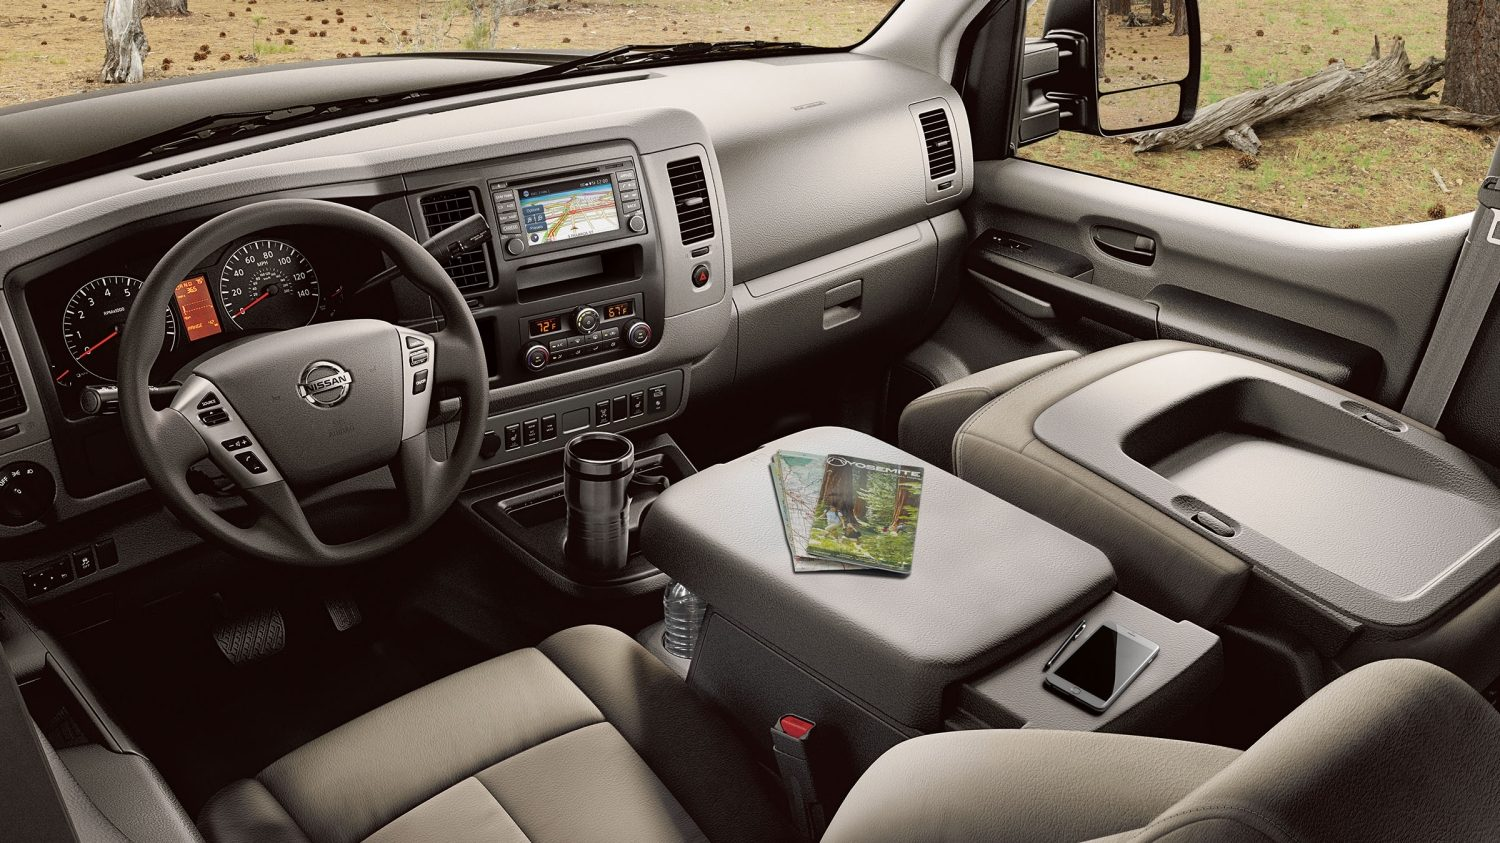 hight resolution of nissan nv passenger interior showing large space